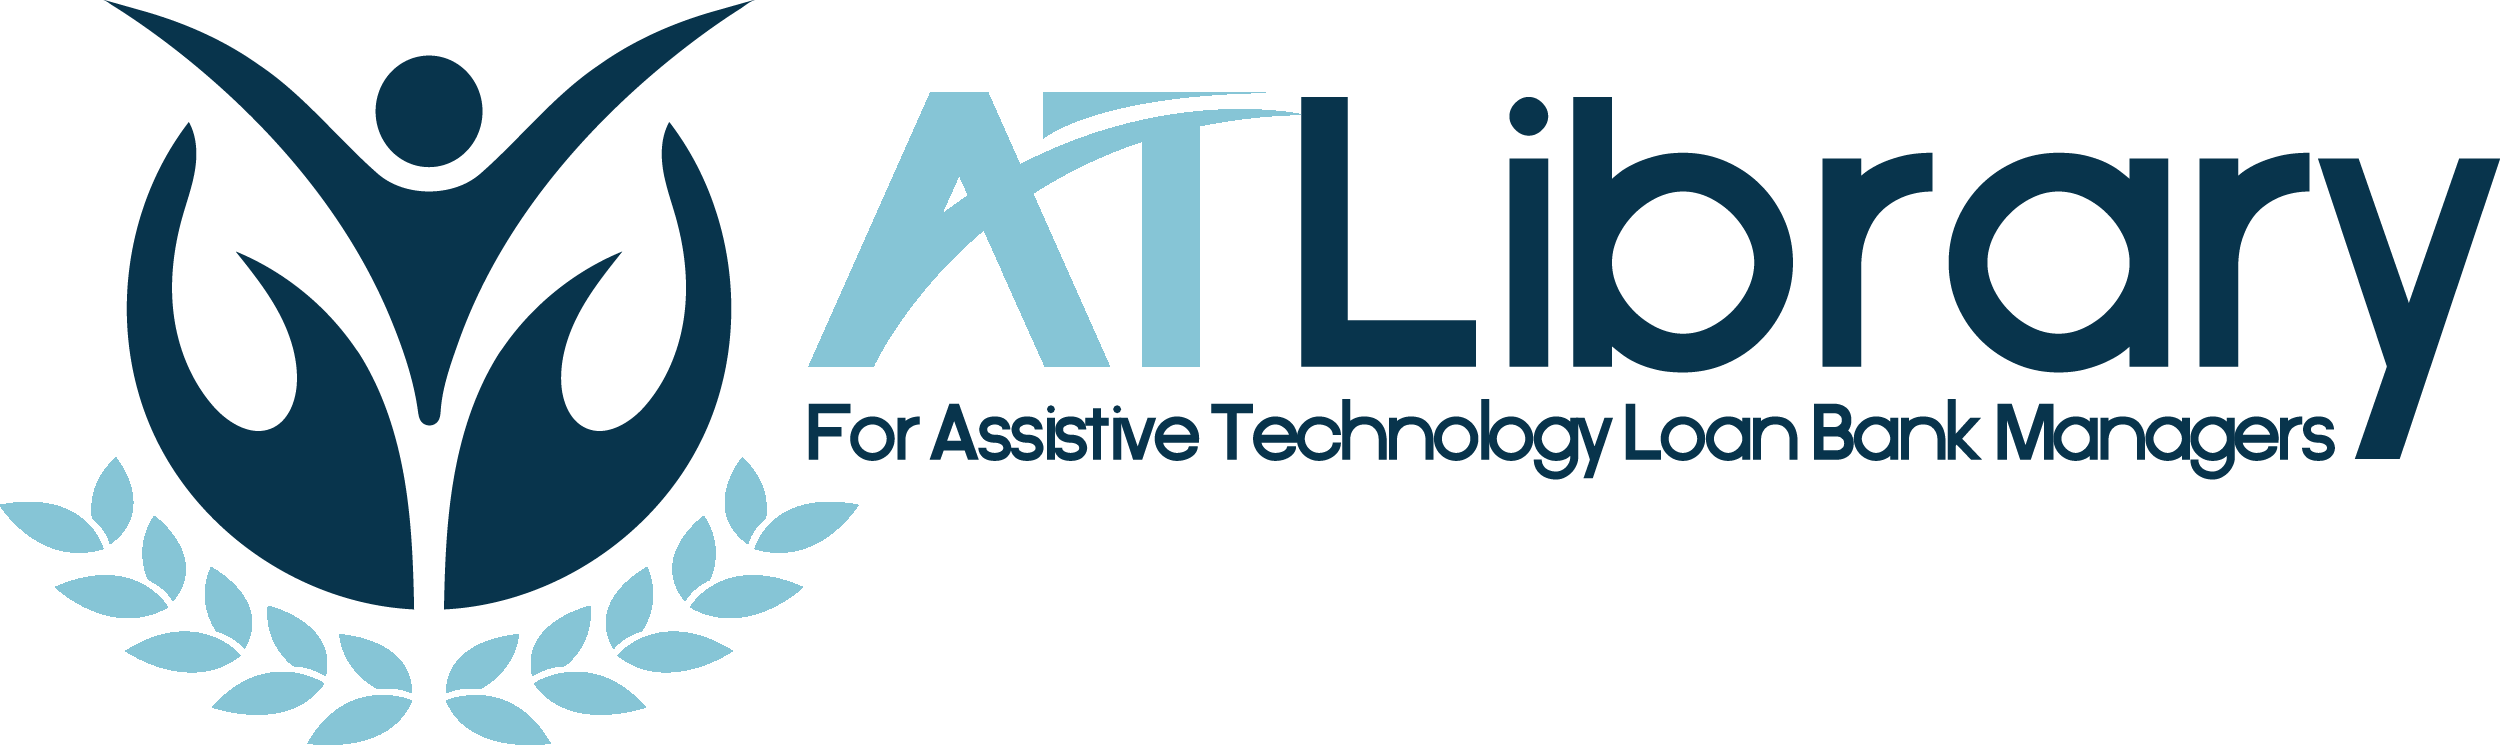 "AT Library Logo, with text ""ATLibrary, For Assistive Technology Loan Bank Managers"""